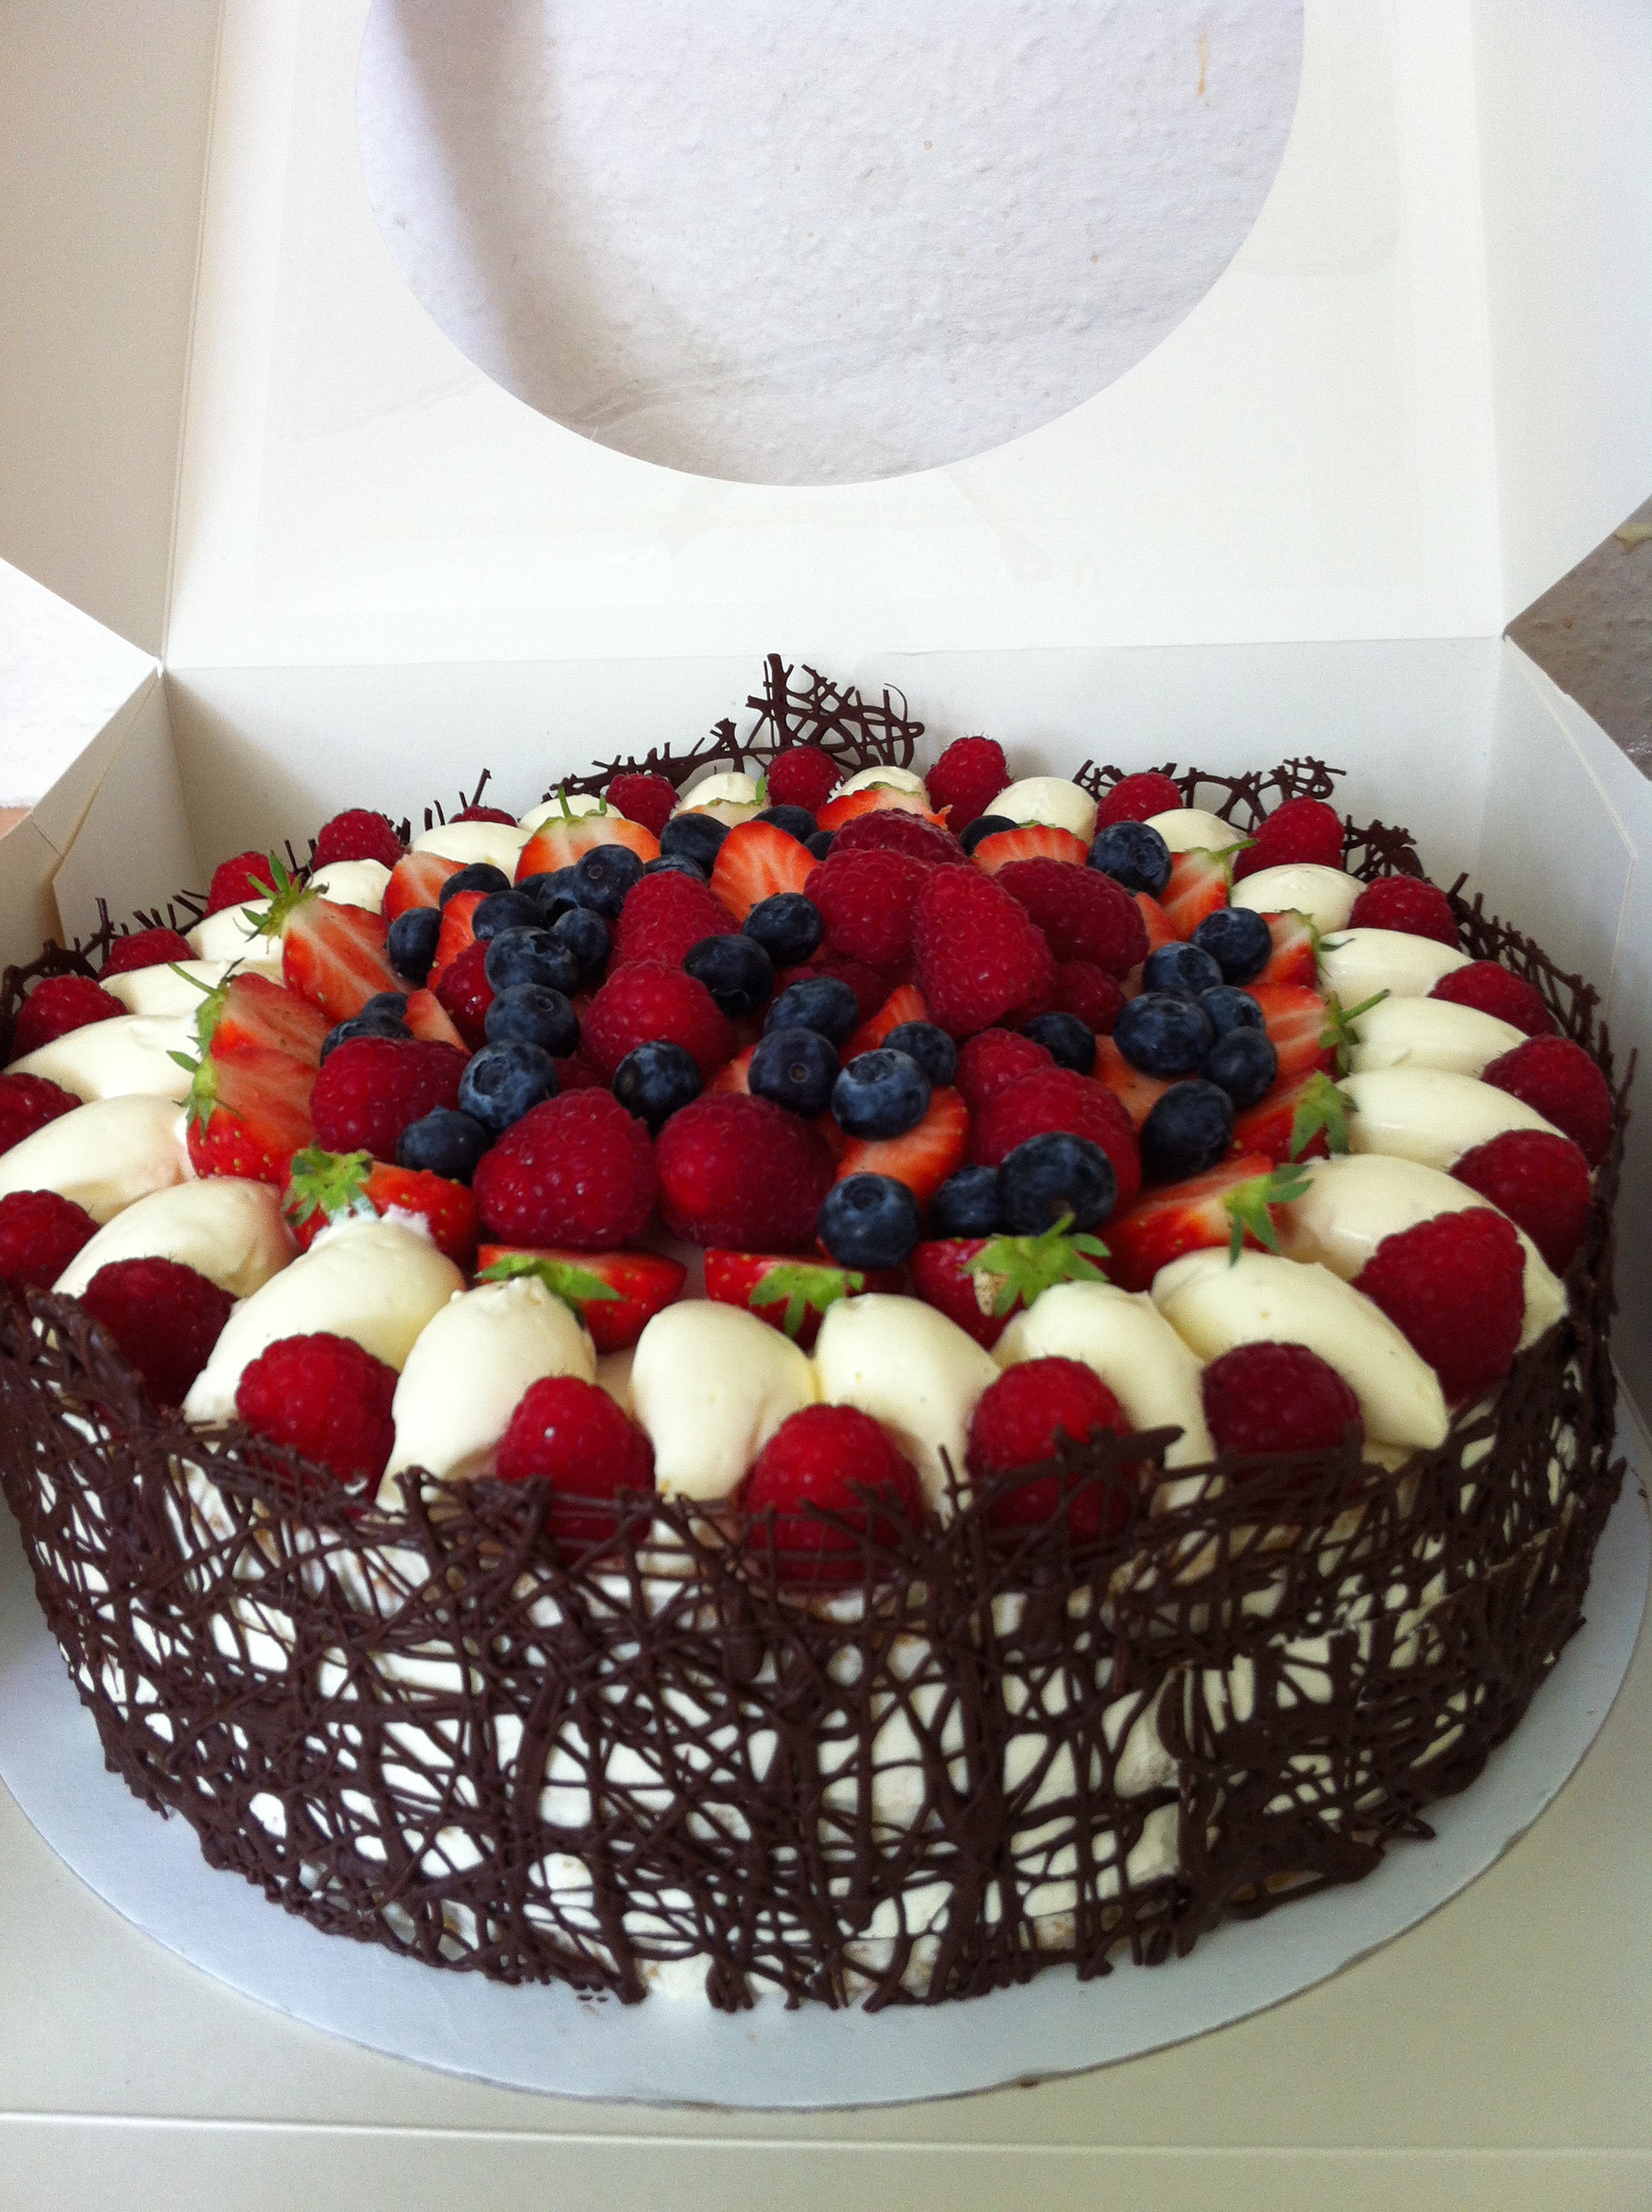 Best ideas about Birthday Cake Pics . Save or Pin Birthday Now.